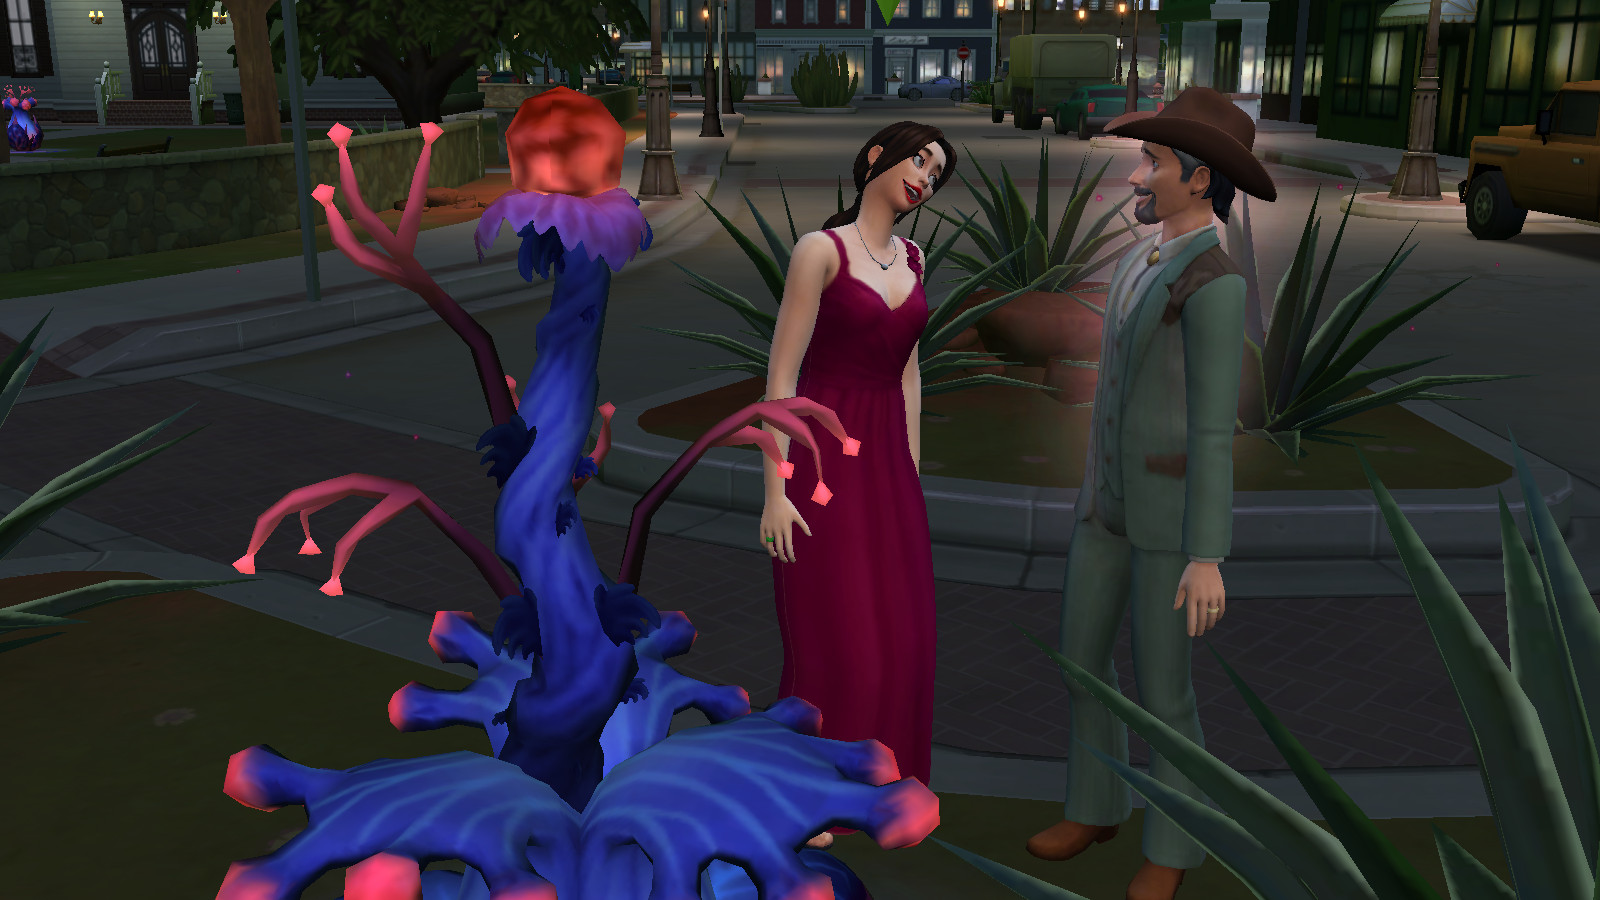 The Sims 4: StrangerVille is rich with potential, but feels